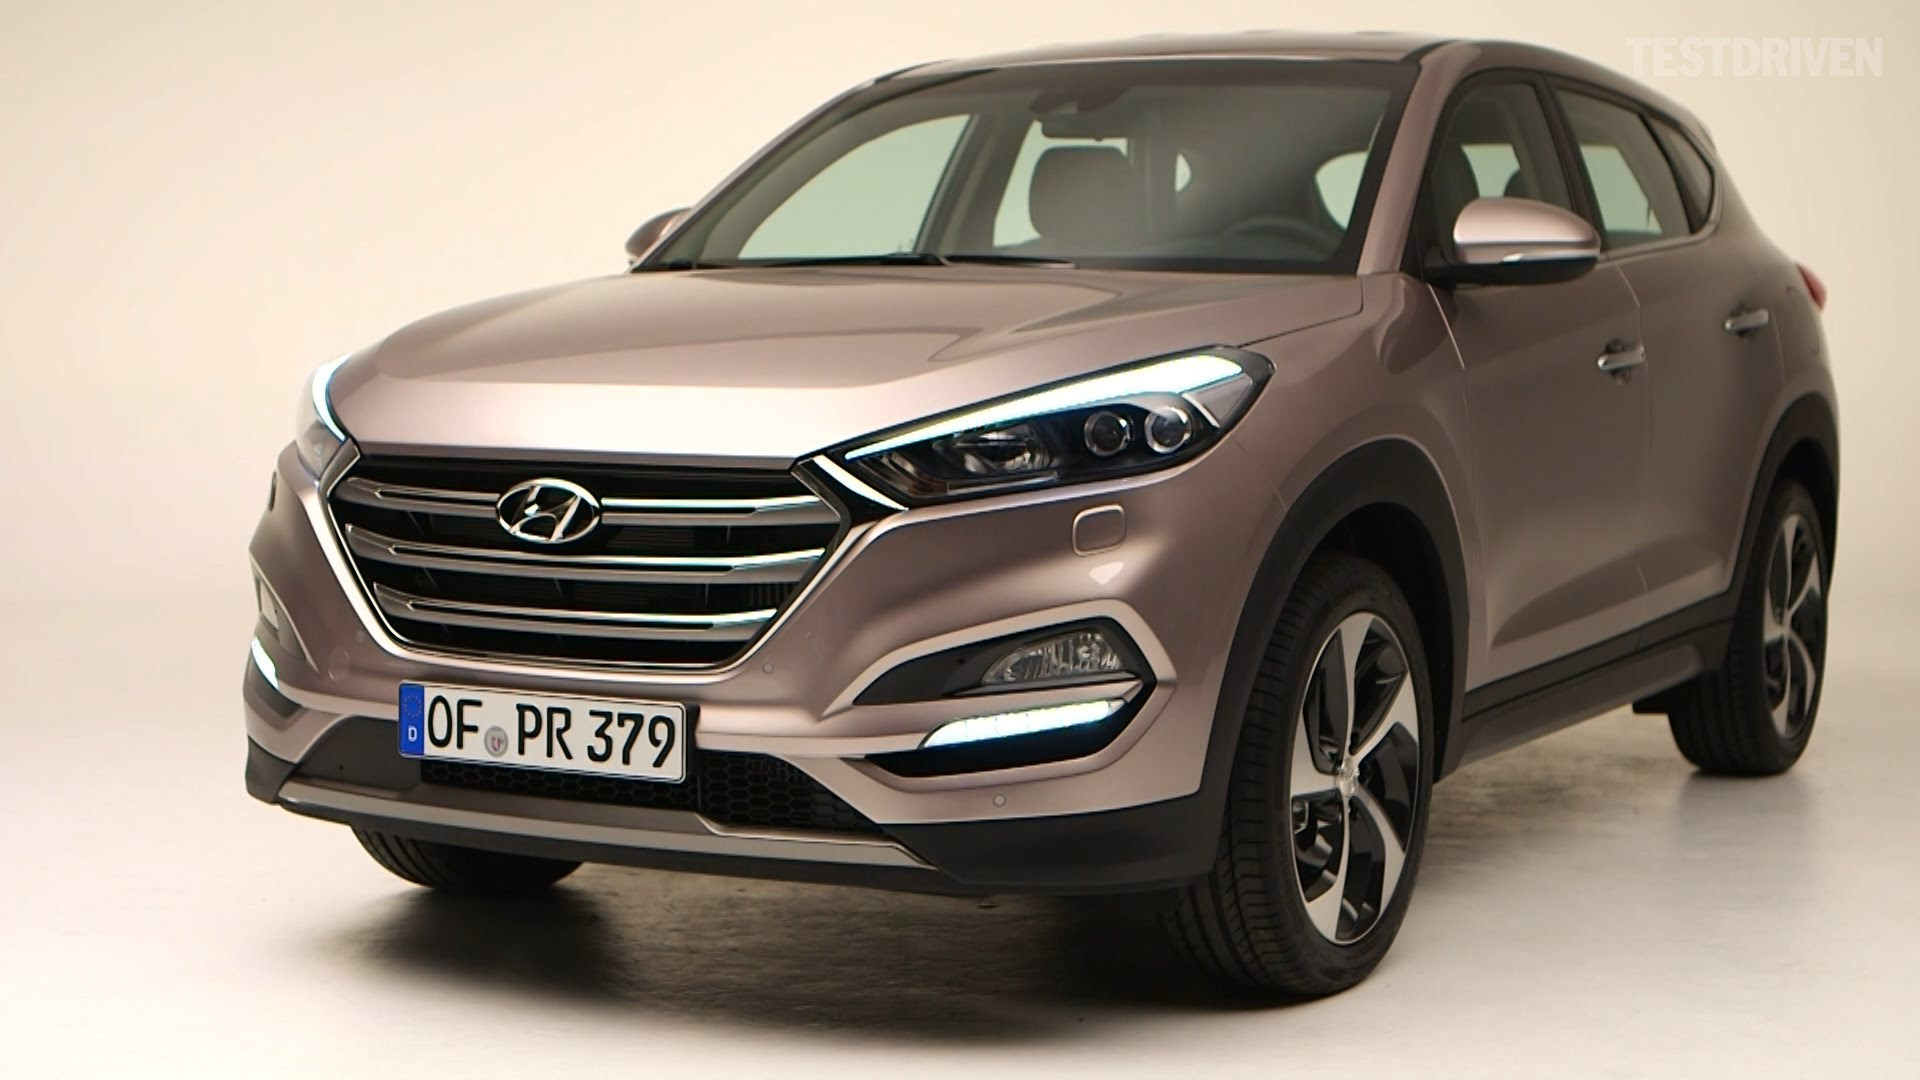 hyundai tucson 2016 hd wallpapers free download. Black Bedroom Furniture Sets. Home Design Ideas